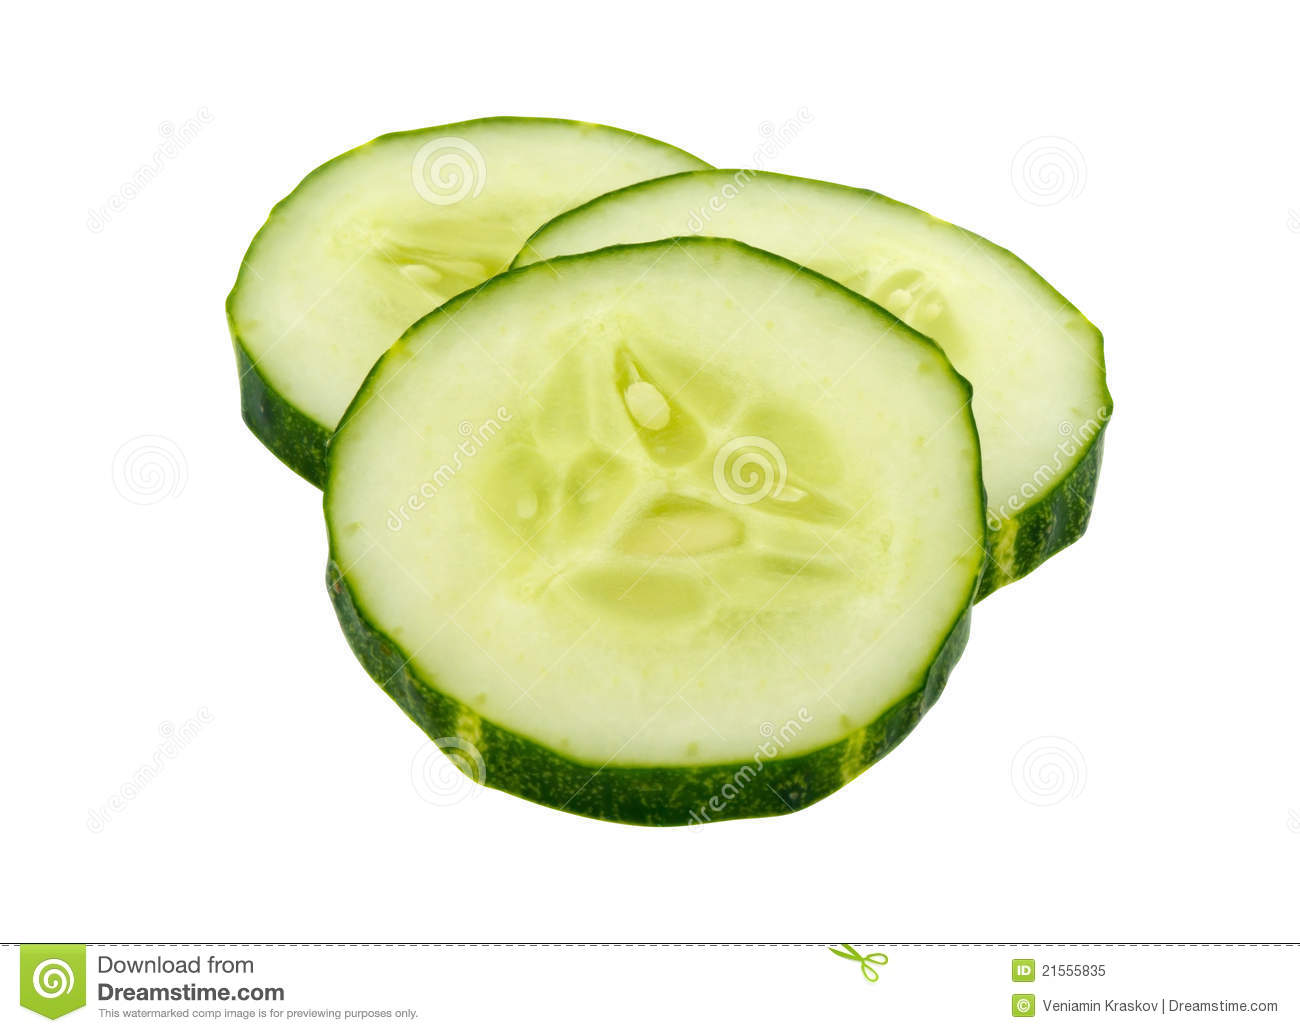 Sliced cucumber isolated on white background. Clipping path included.